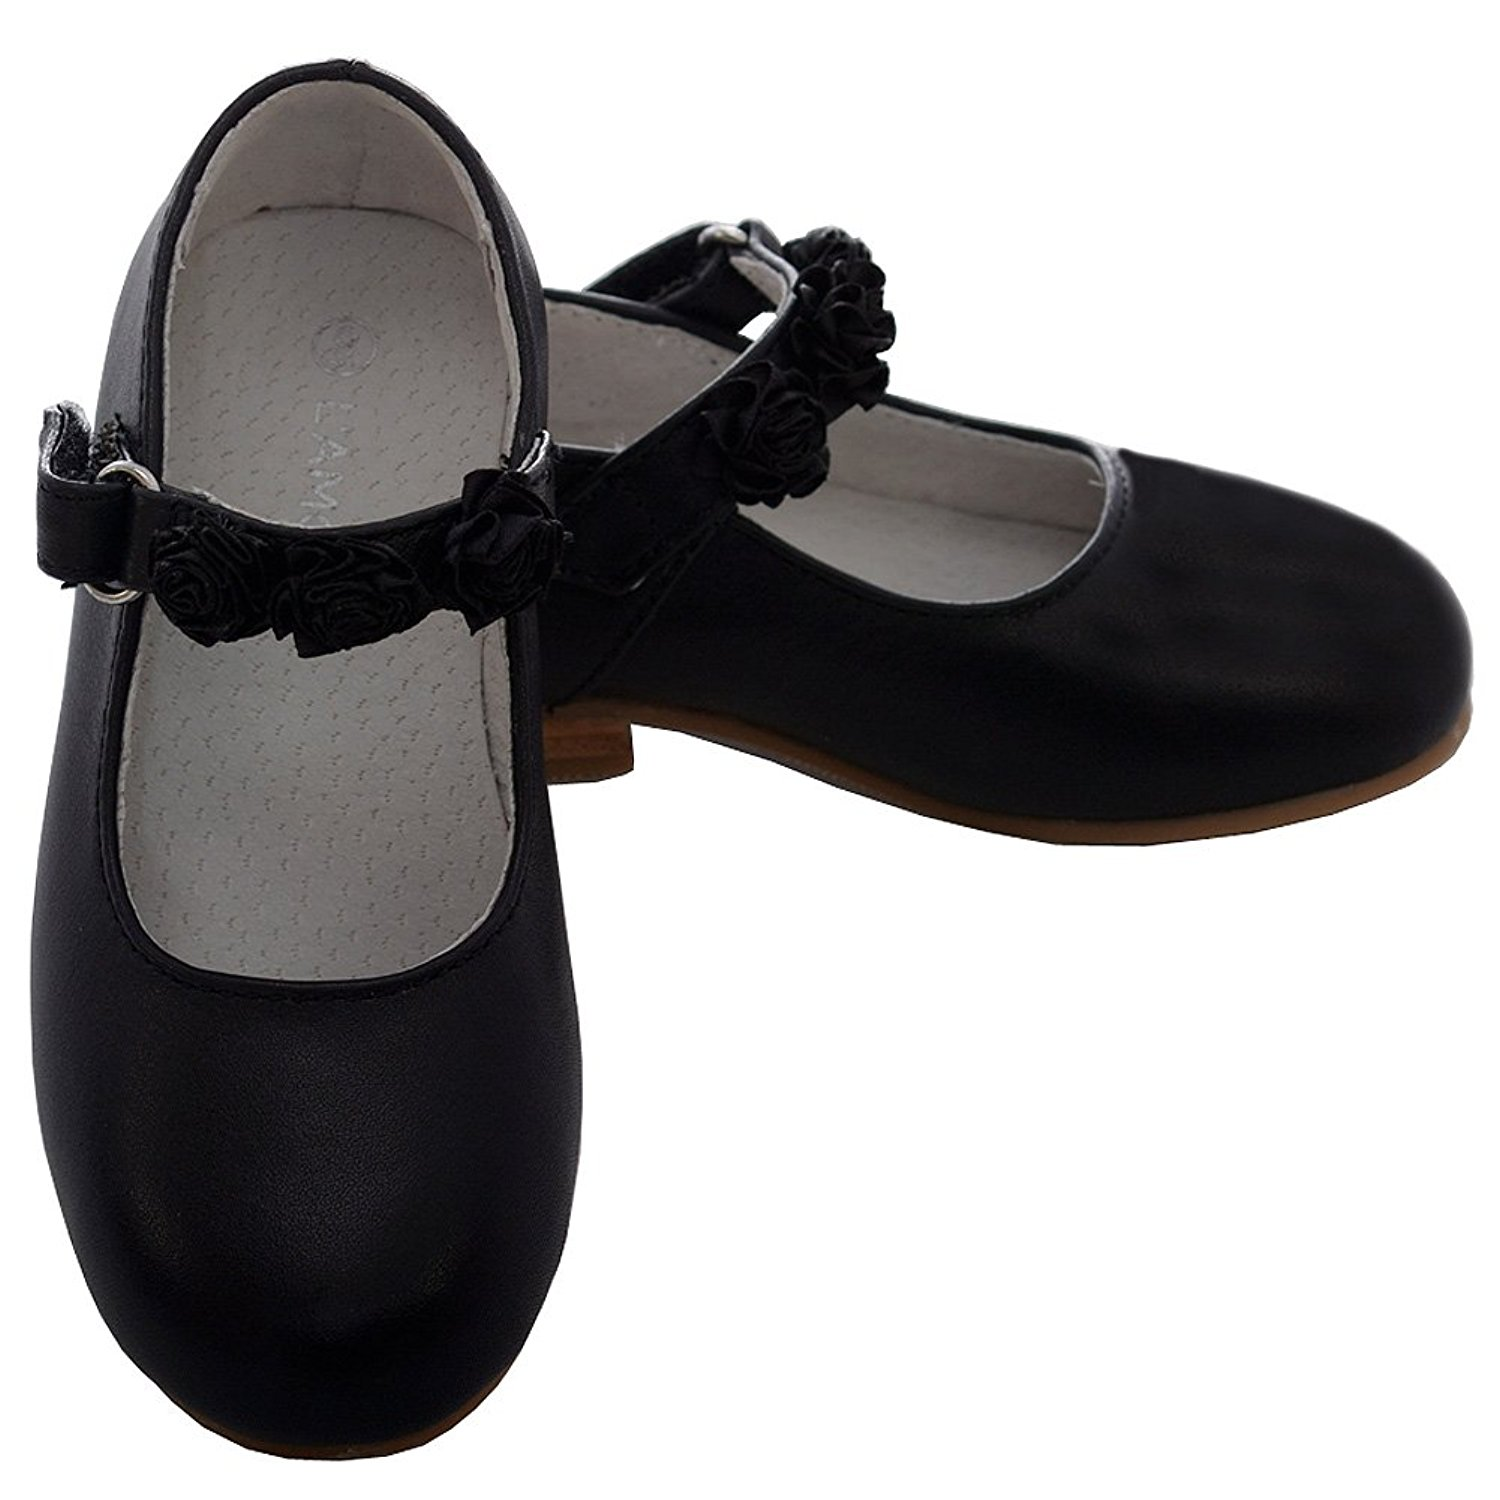 314424d5aafc Get Quotations · L Amour Toddler Girl Black Leather Flower Mary Jane Velcro  Shoe